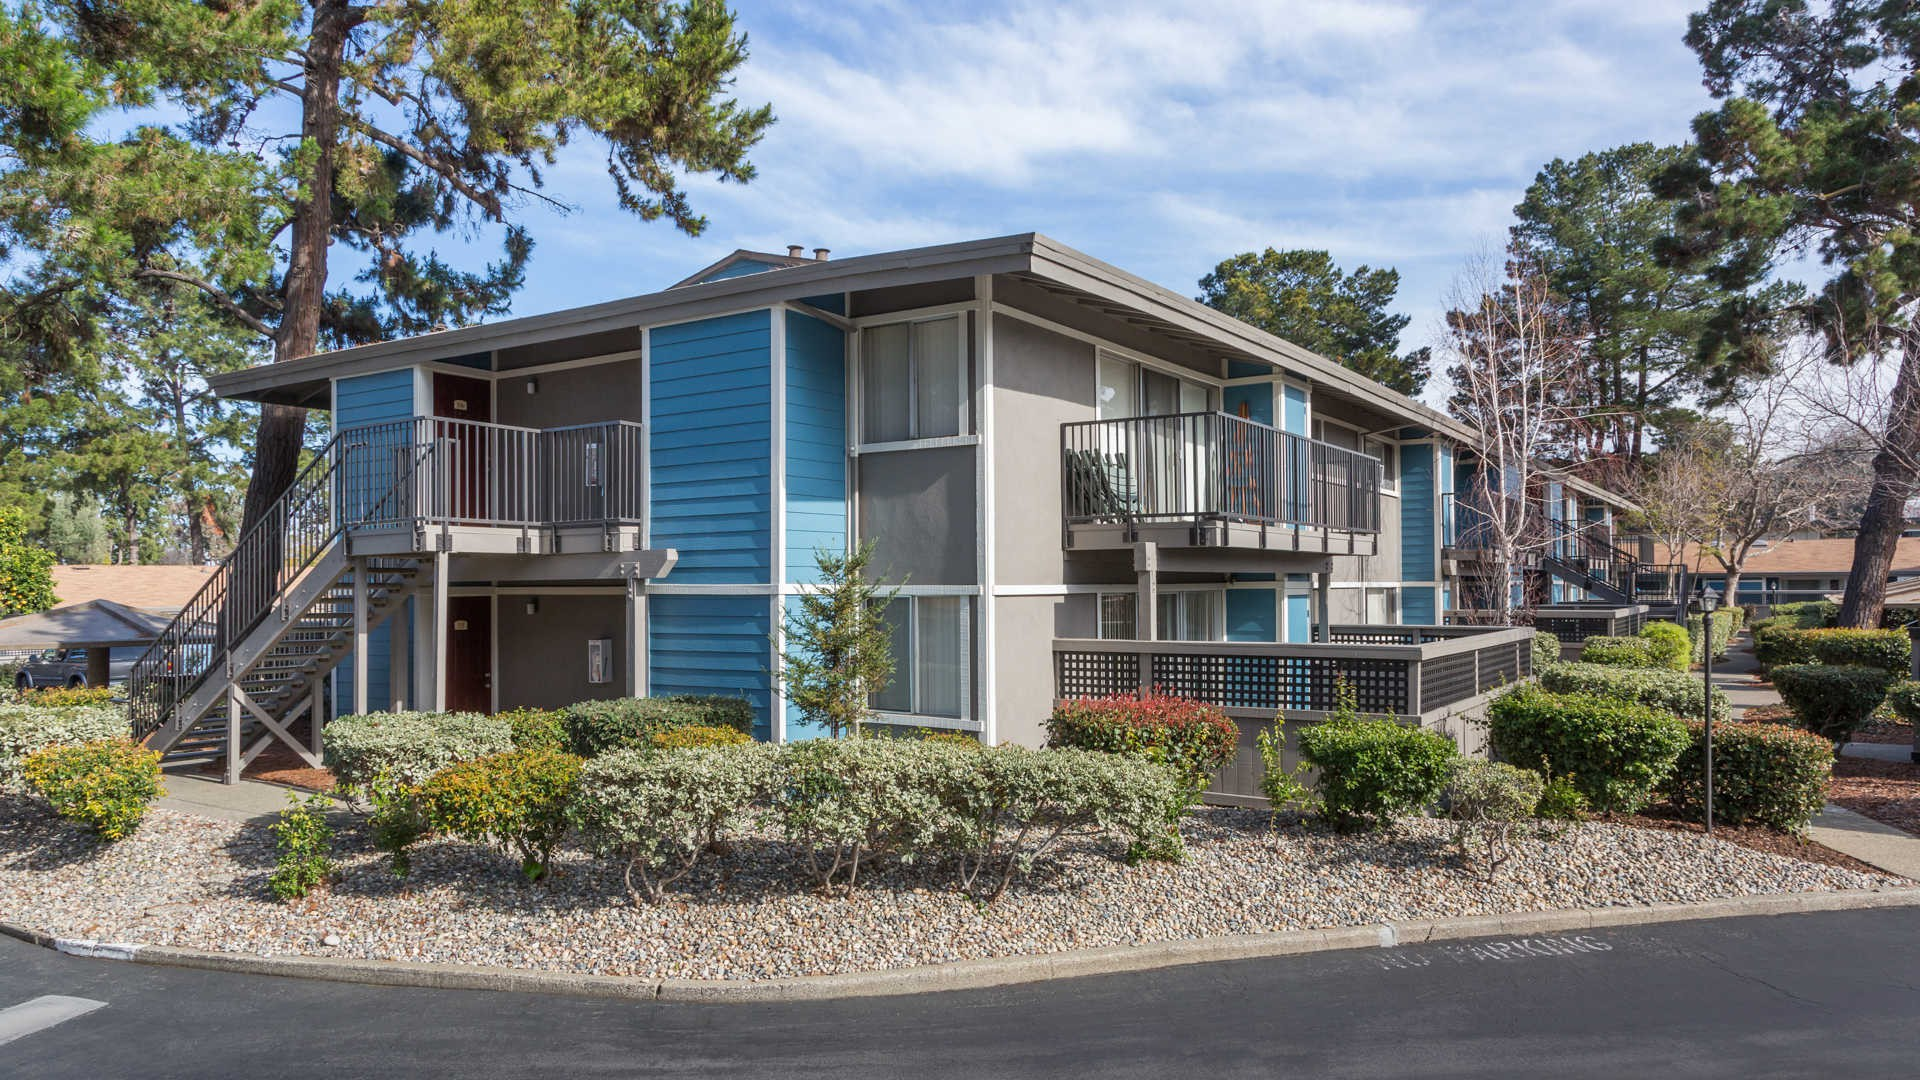 Reserve at Mountain View for rent